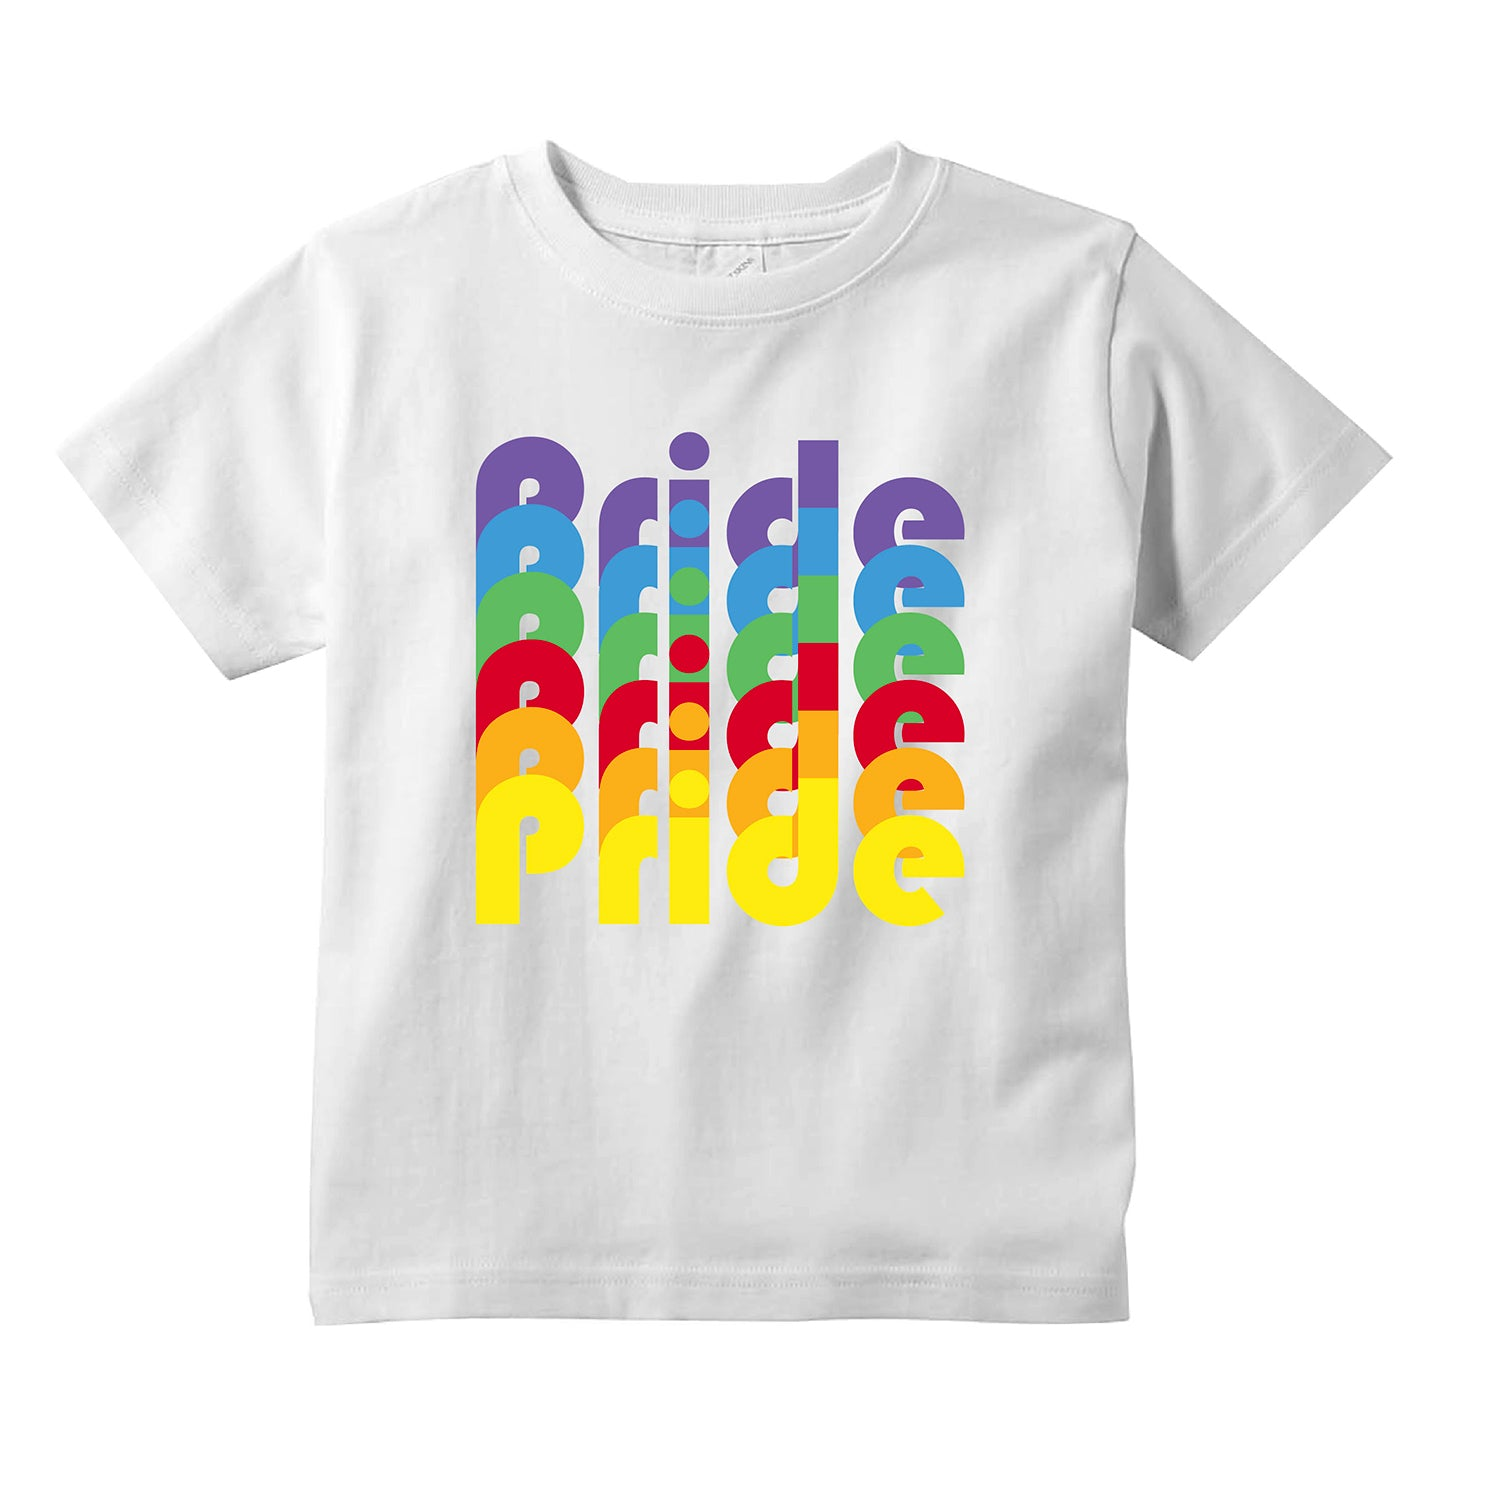 Pride Kids T-Shirt + FREE Love is Love Pride Face Mask